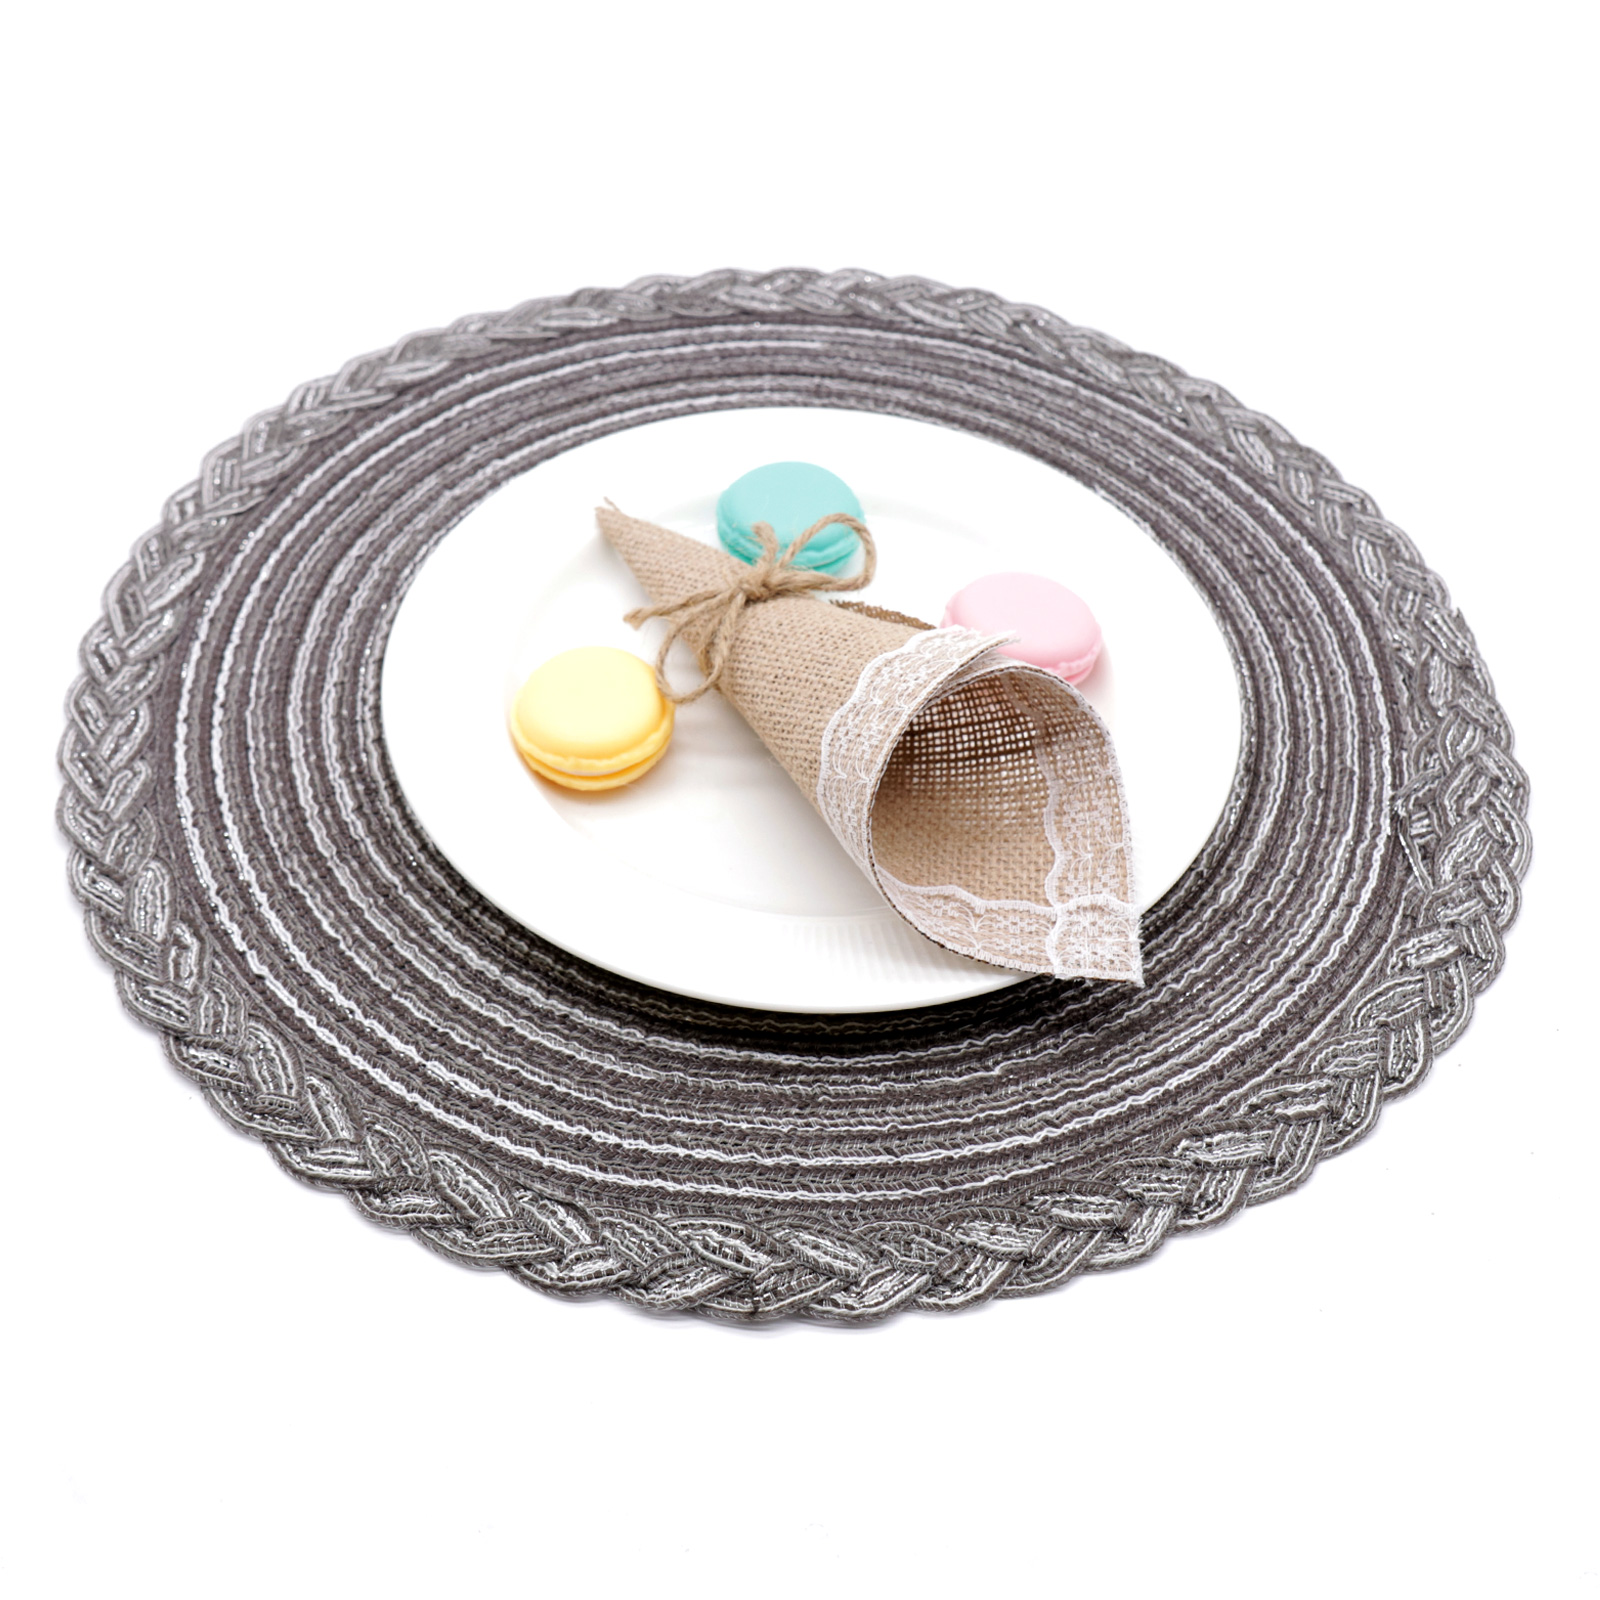 38cm Round Woven Placemat Dining Table Mats Non Slip Washable Kitchen Decor